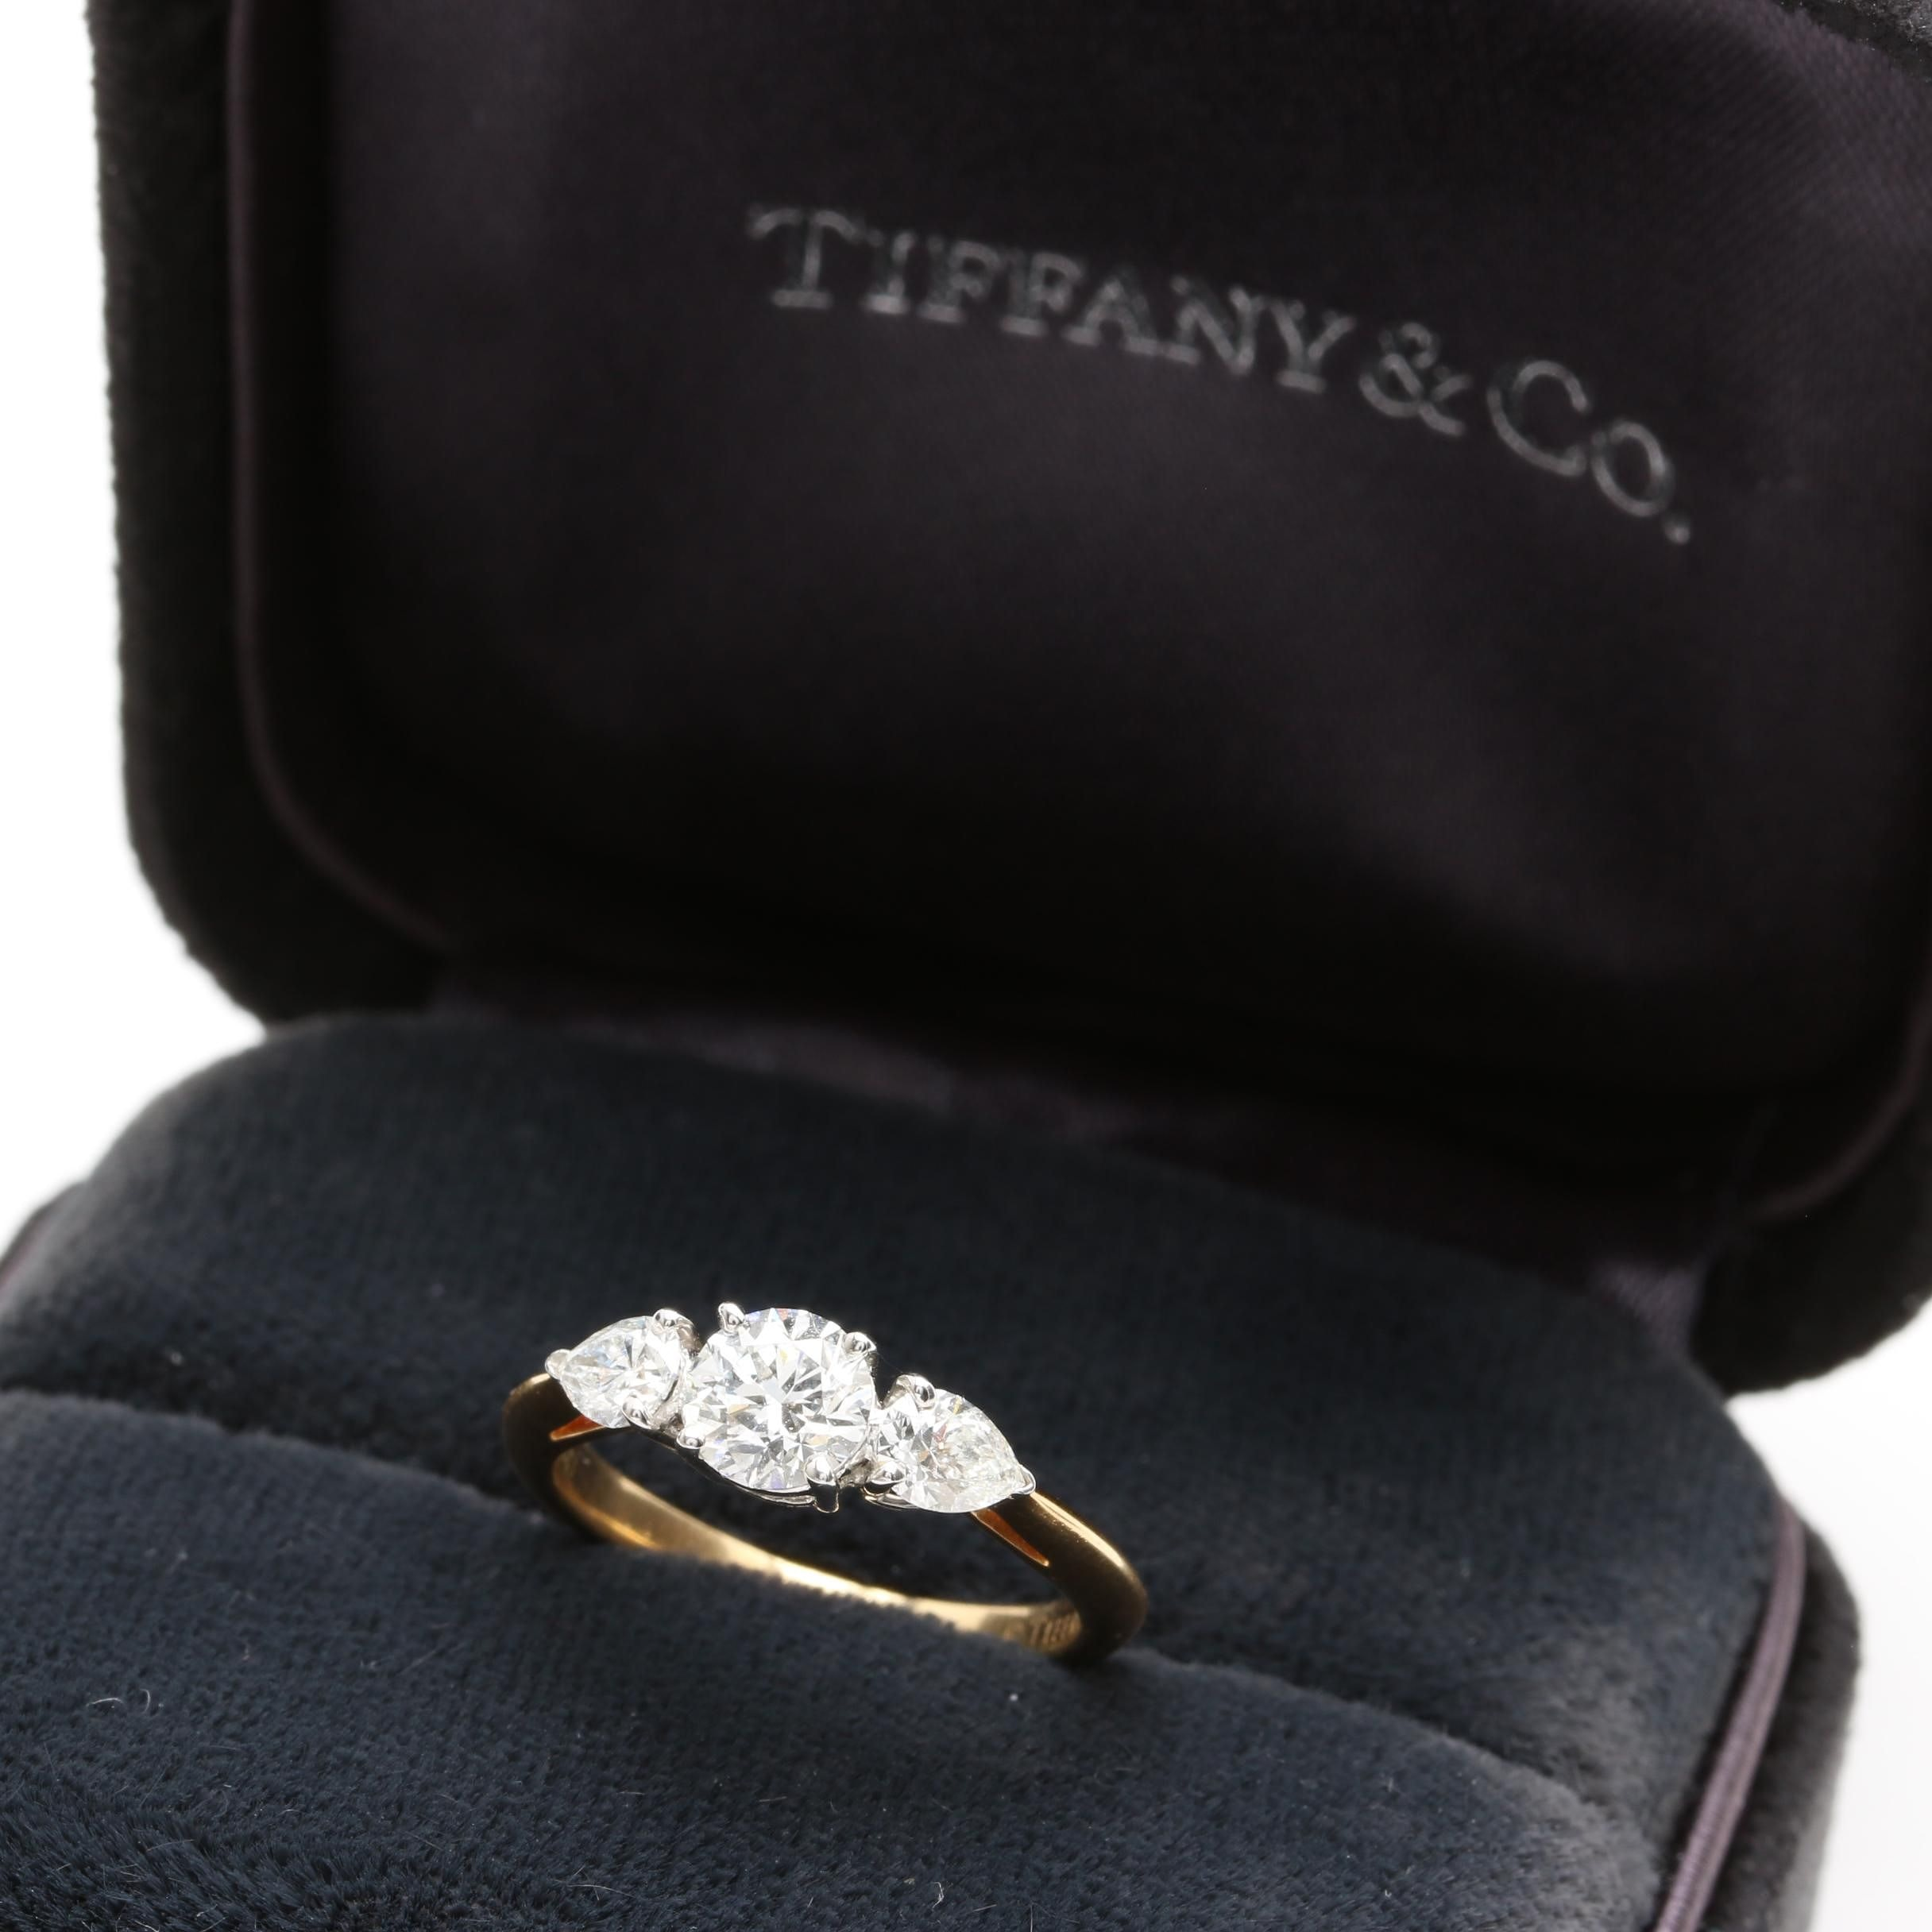 Tiffany & Co. Platinum and 18K Gold Diamond Ring with Tiffany & Co. Certificates